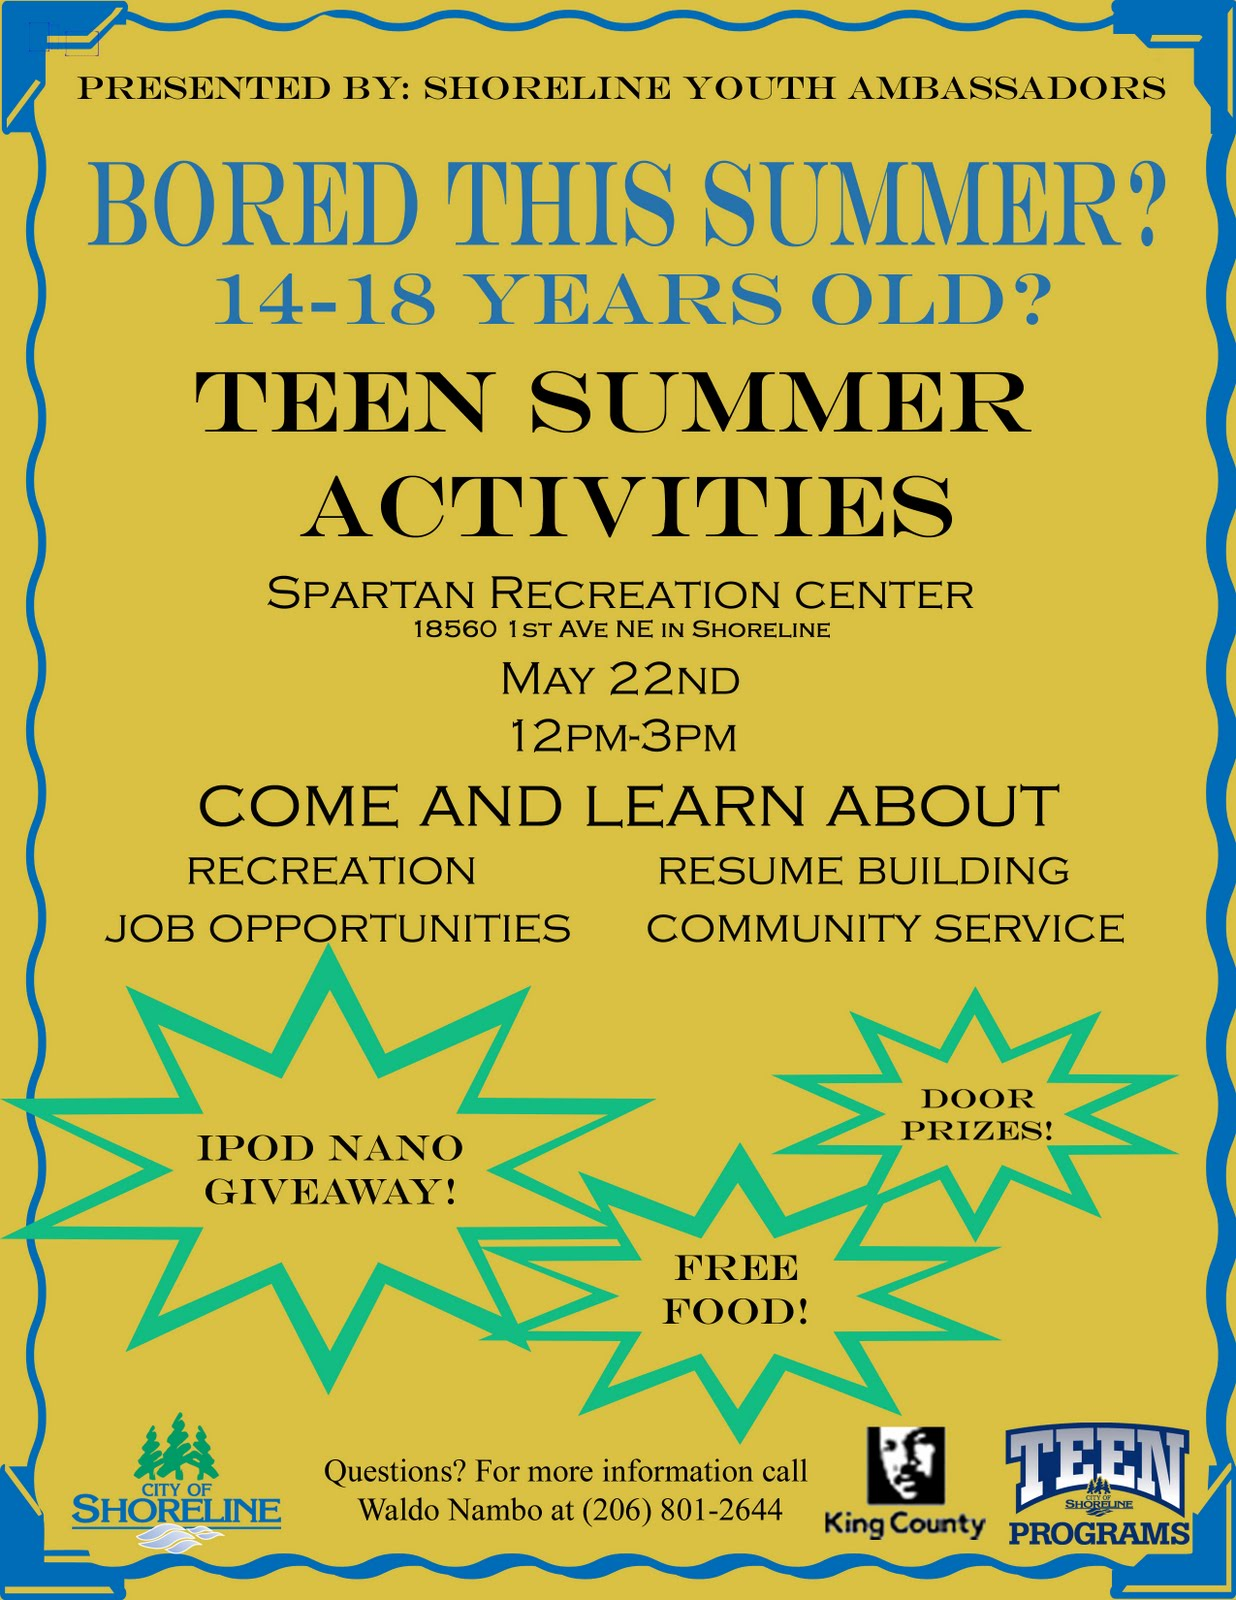 Shoreline Area News Teen Summer Activities Fair On May 22